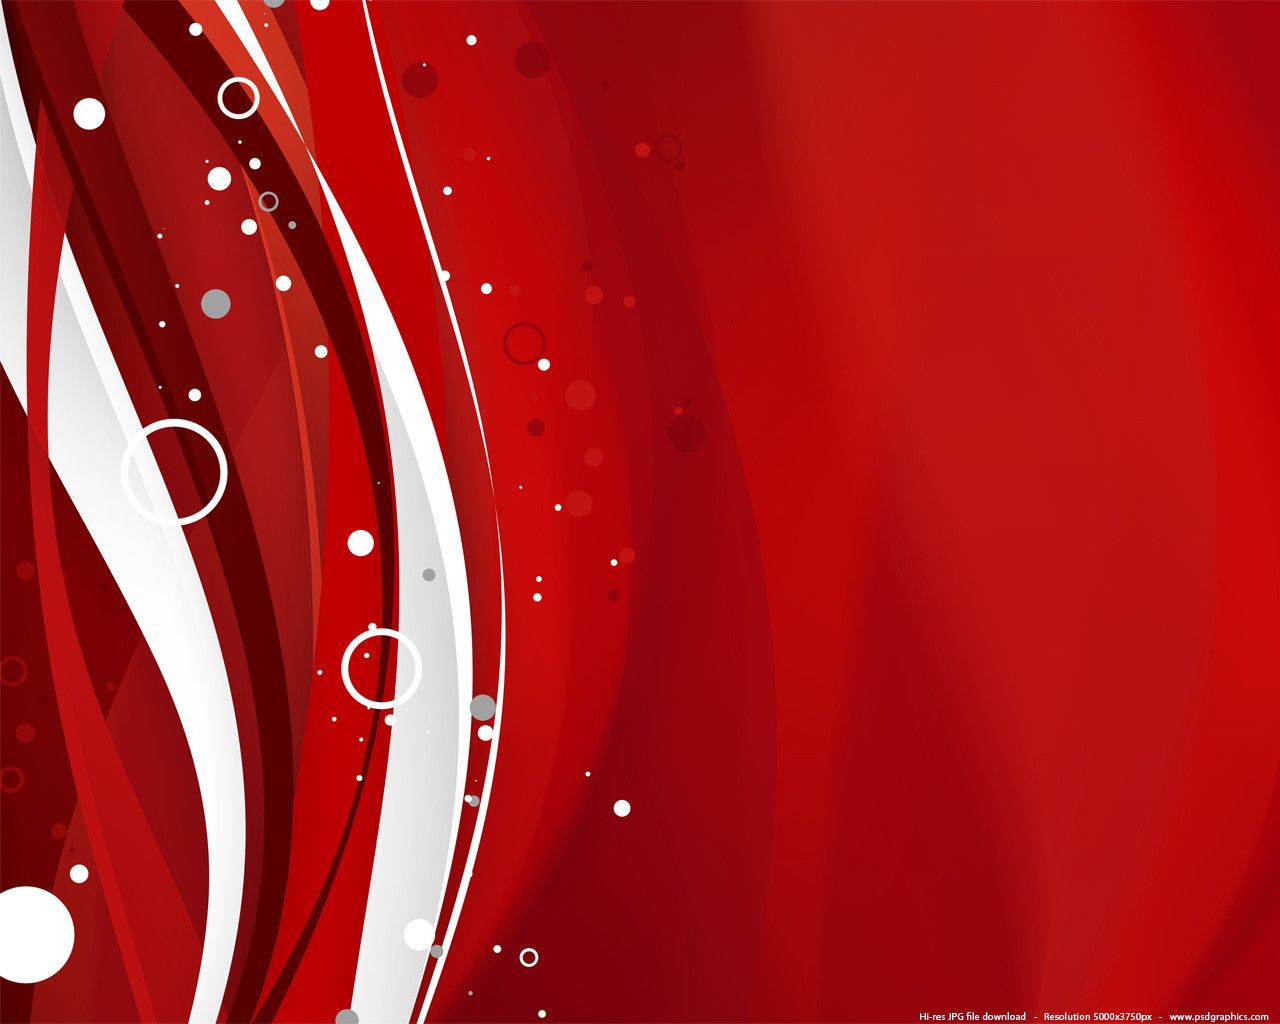 Red And White Wallpaper Designs | Galleryimage.co for Simple White And Red Wallpaper Designs  568zmd